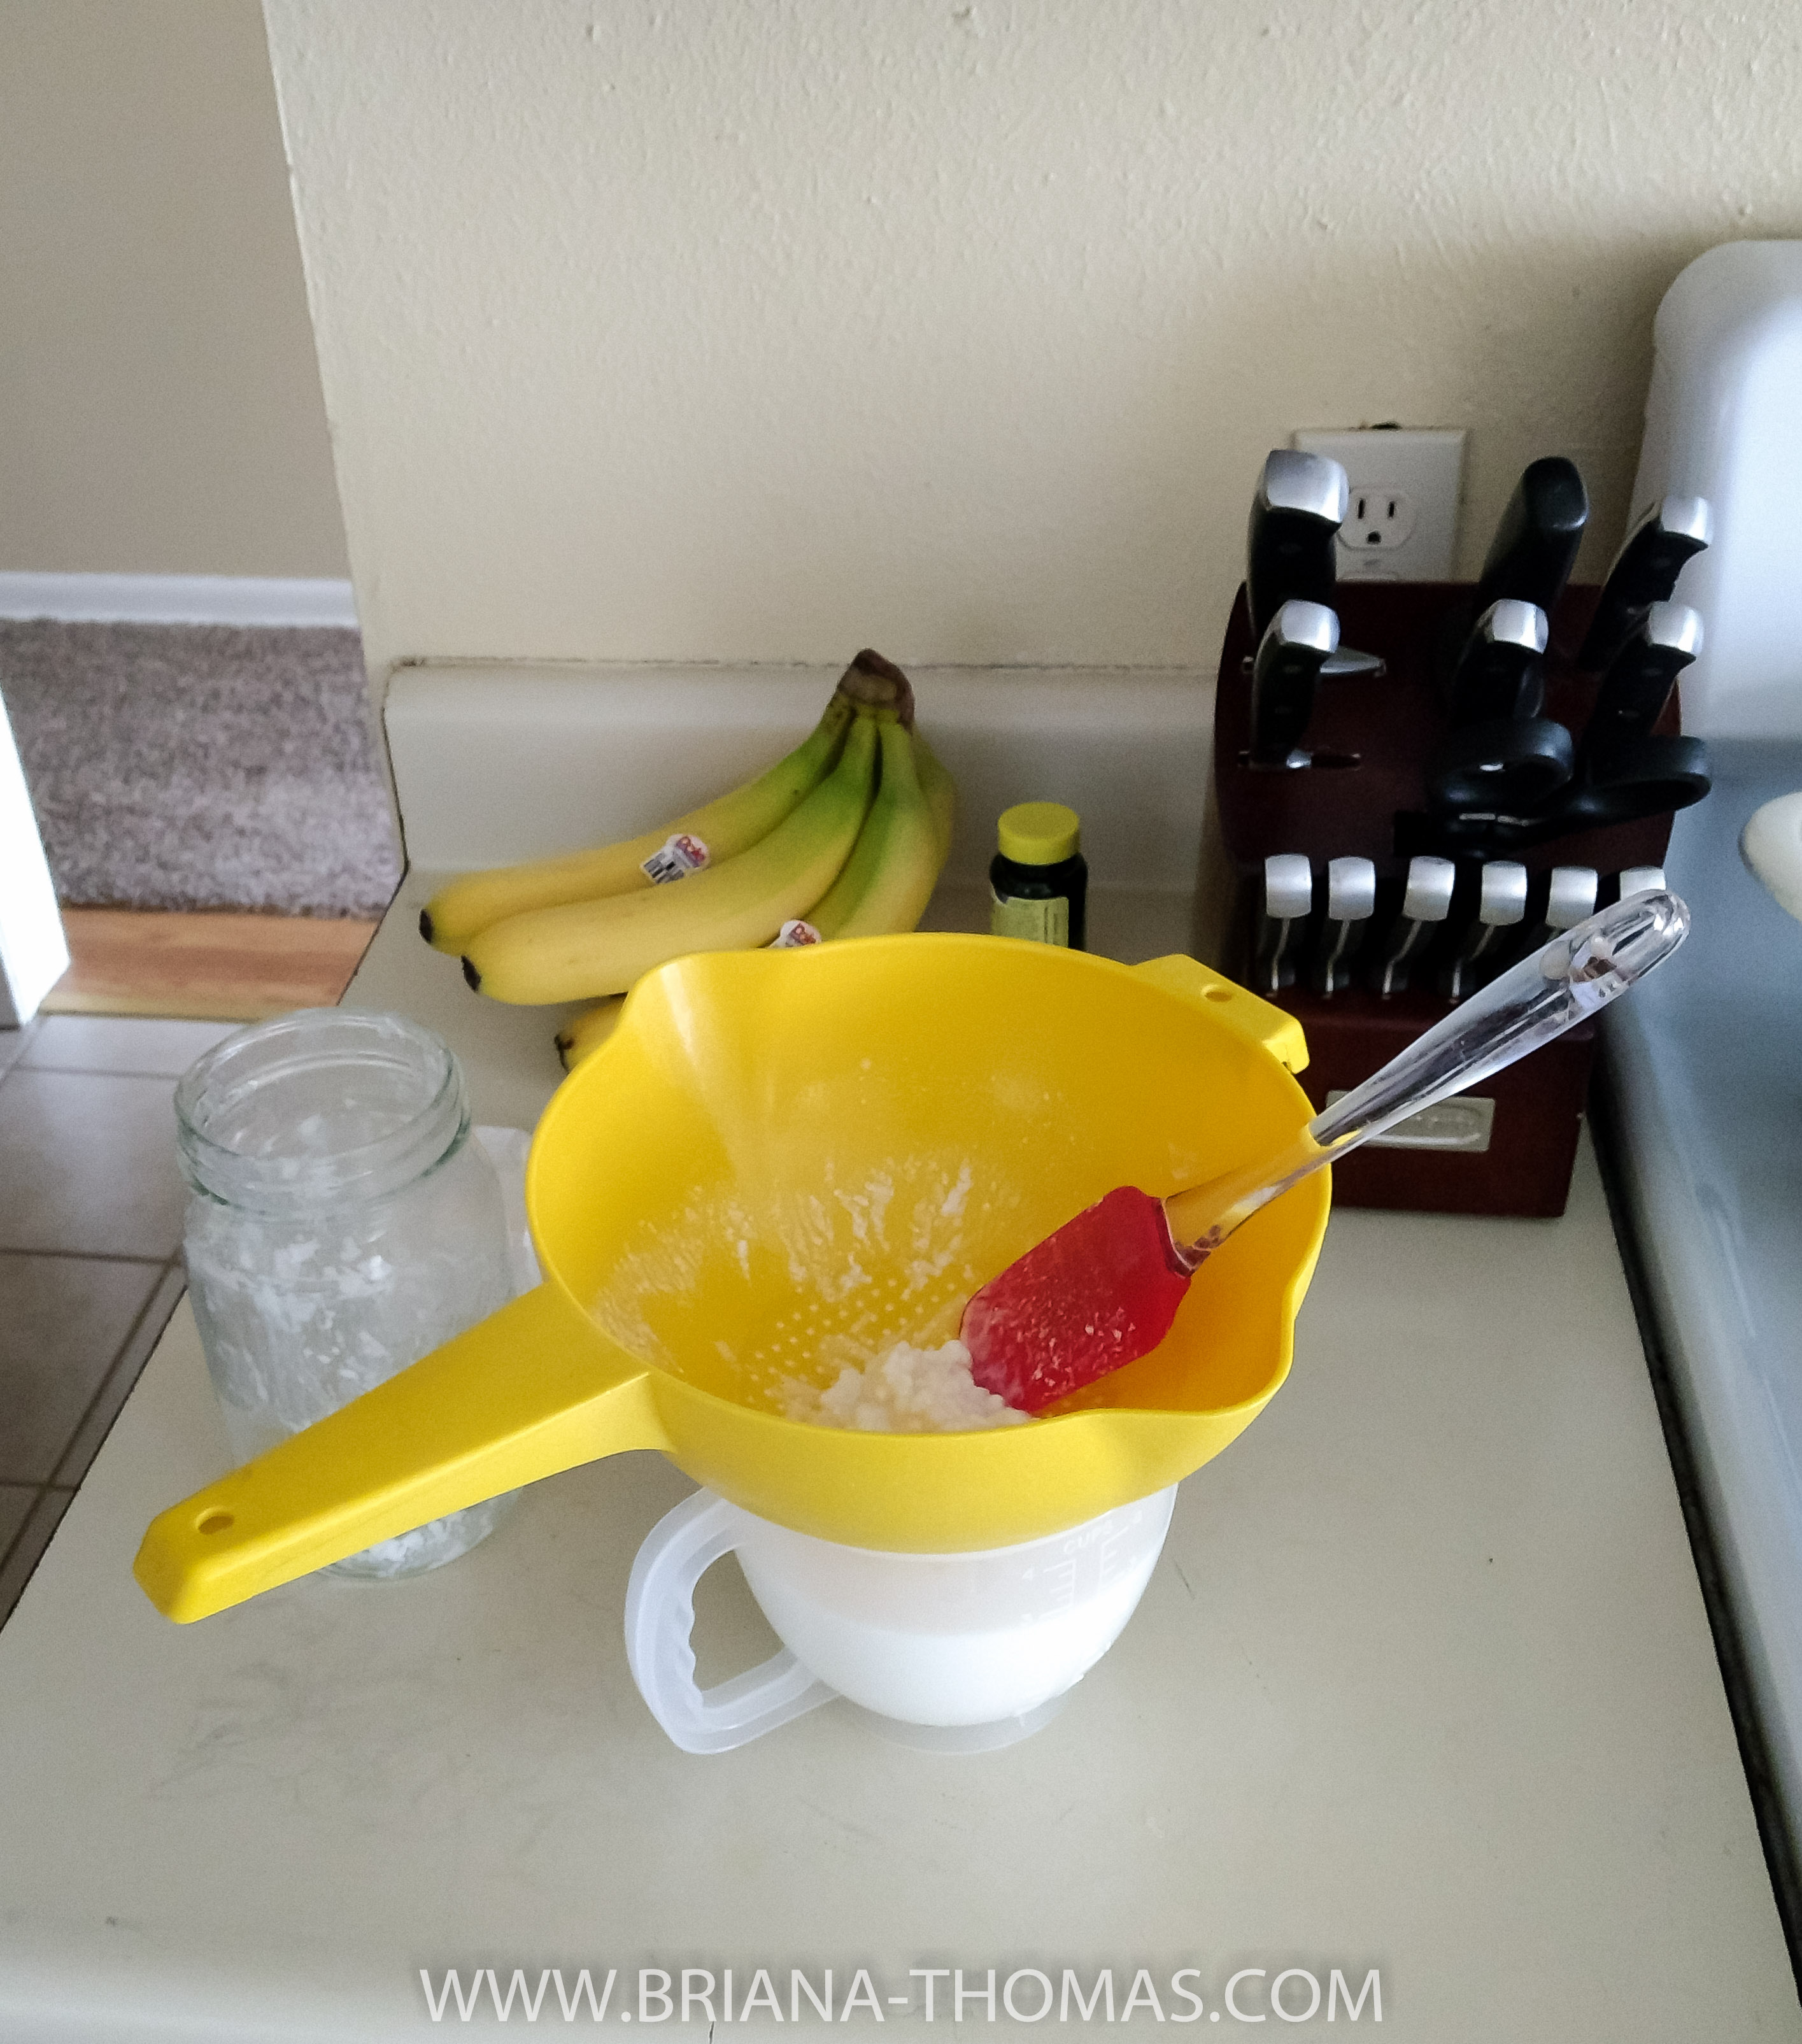 Straining my kefir with my new colander!